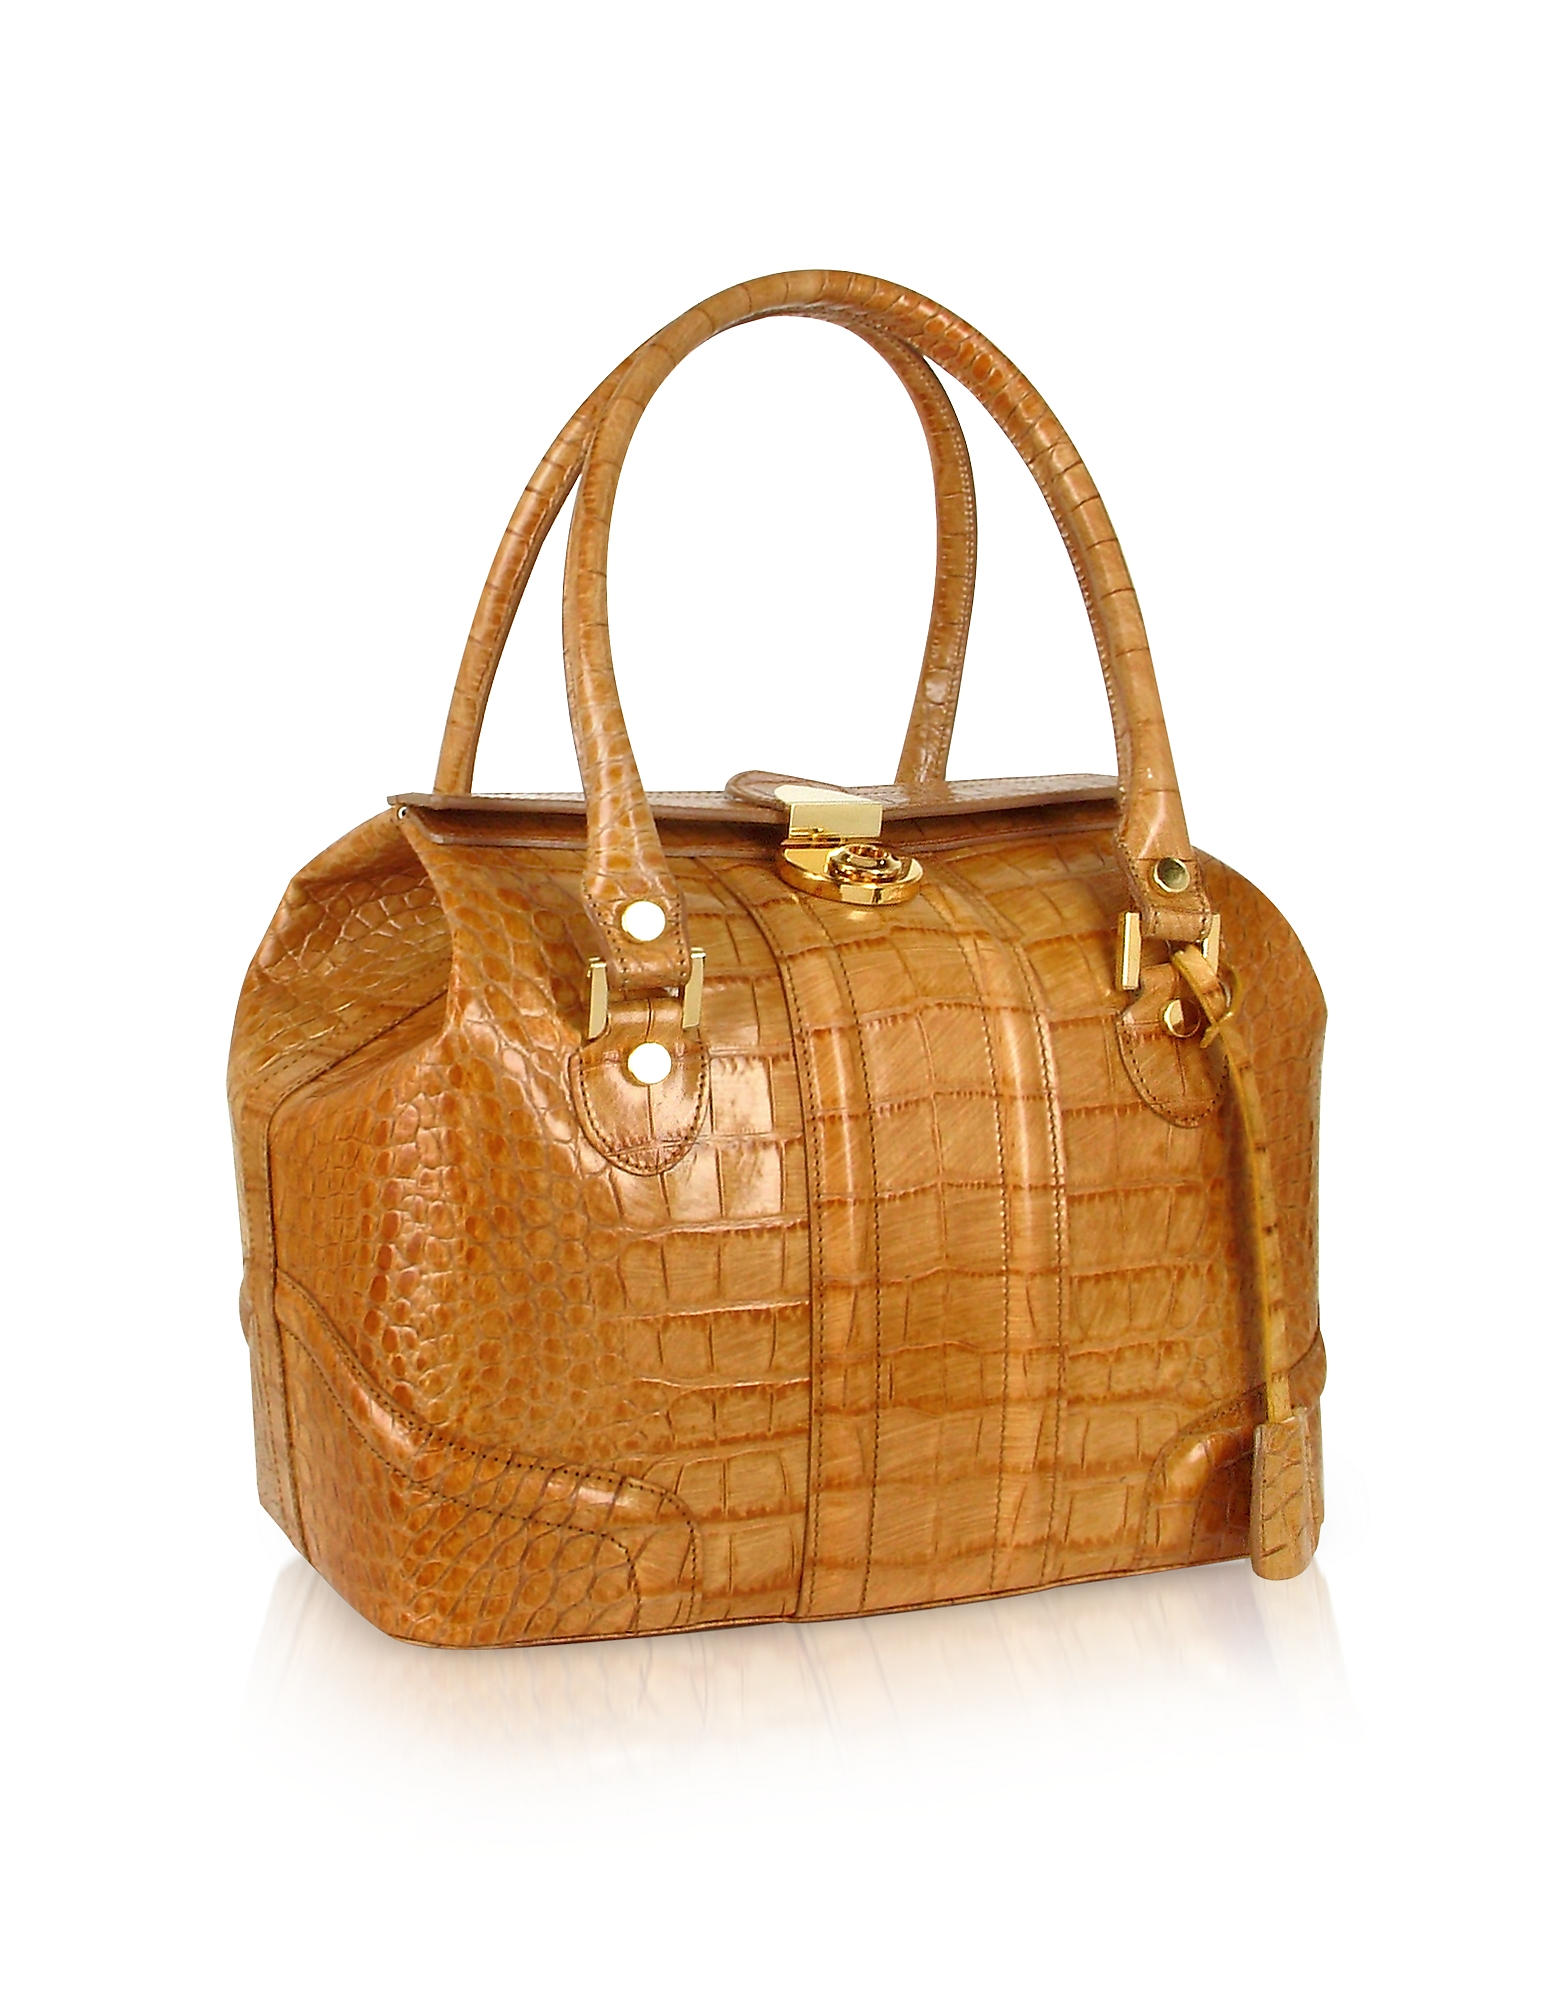 L.A.P.A. Designer Handbags, Sand Croco Stamped Italian Leather Tote Bag